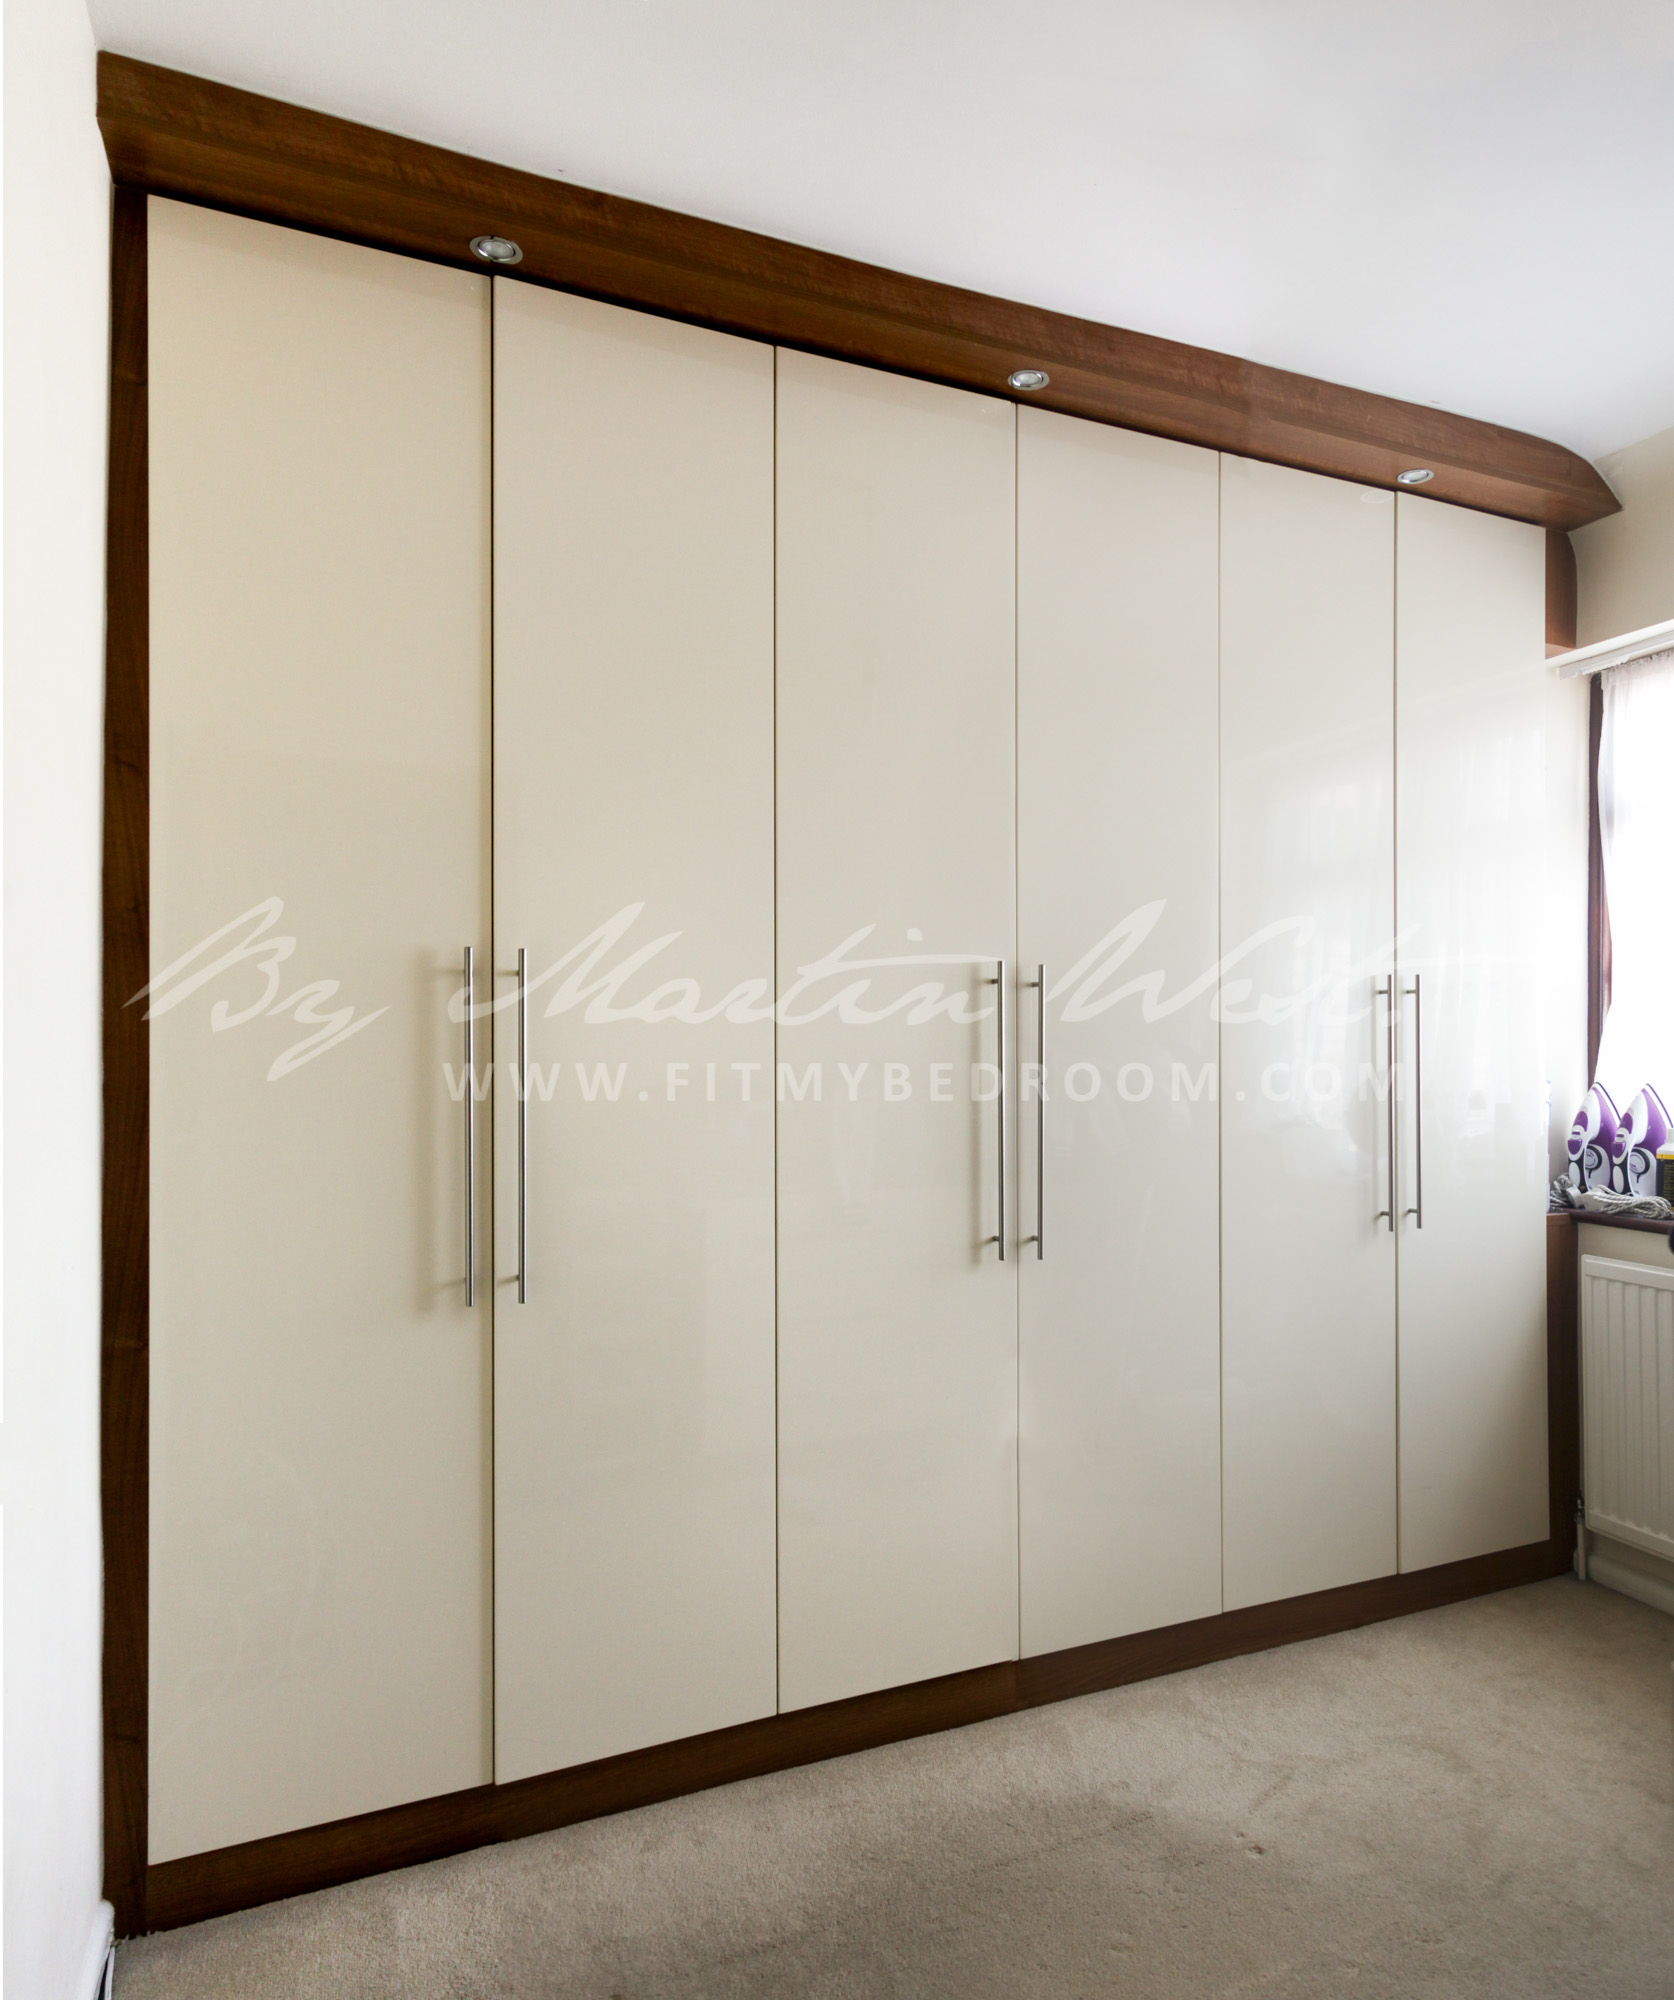 fitted-wardrobes-3 Discount offers with Affordable finance plans